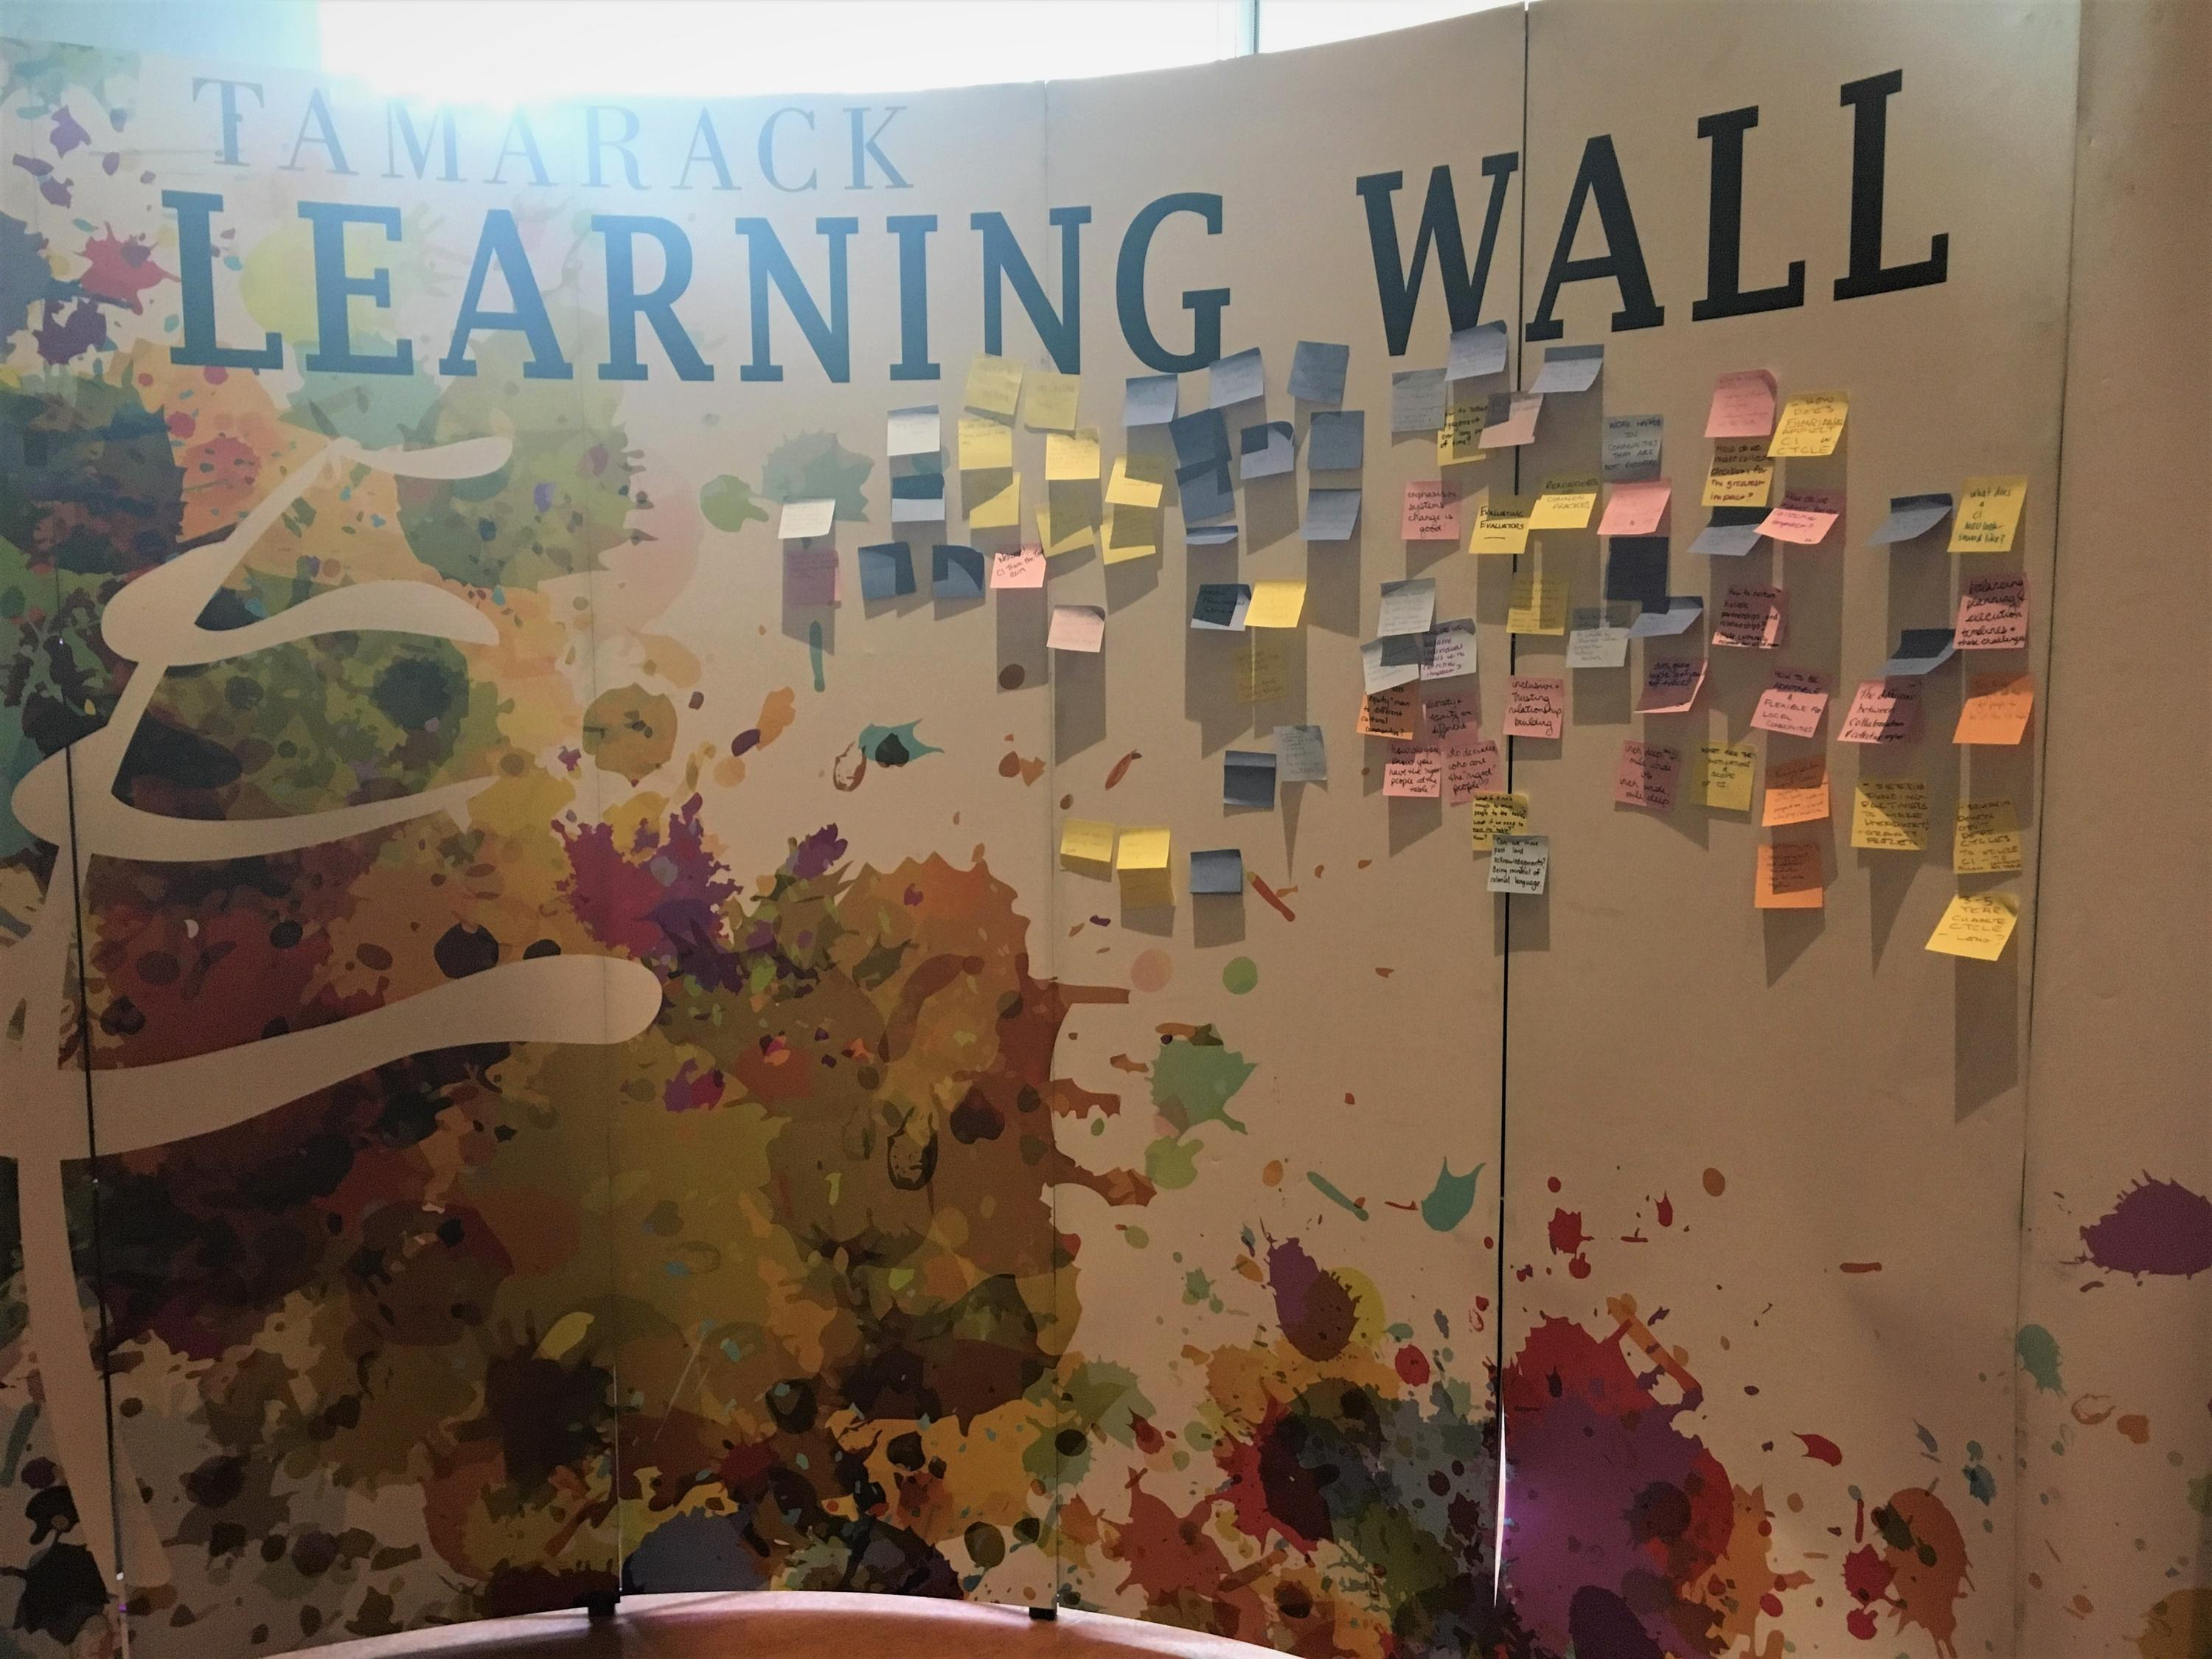 The Learning Wall - attendees placed sticky notes with what they learned from the workshop on a wall together